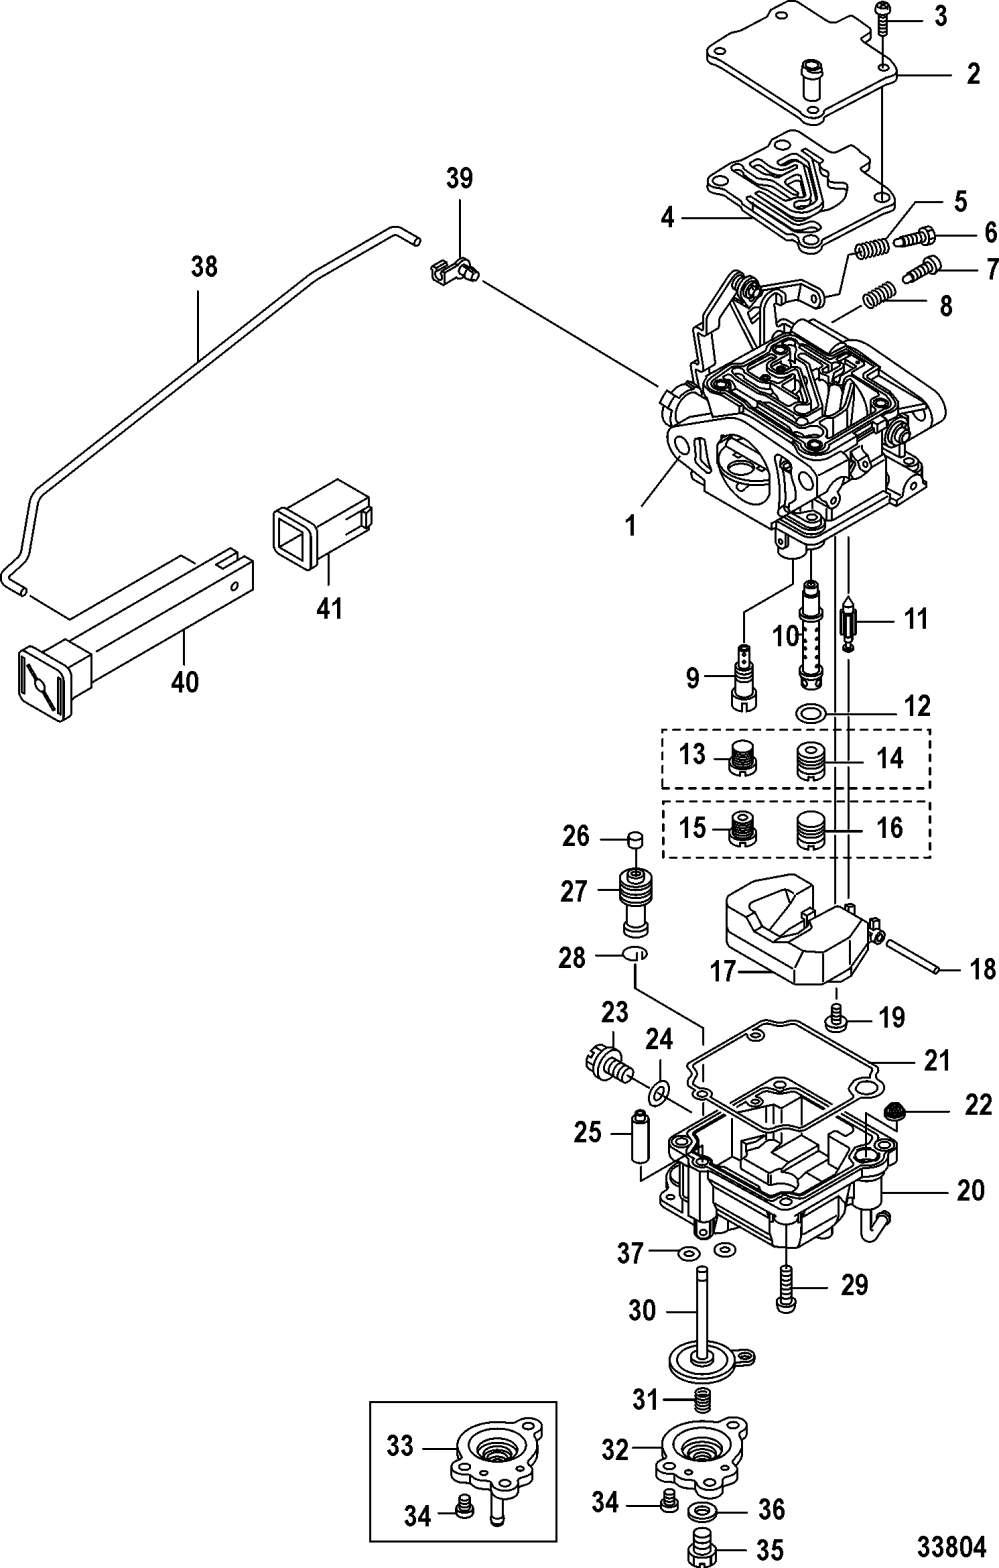 medium resolution of ref description qty required price 1 carburetor assembly